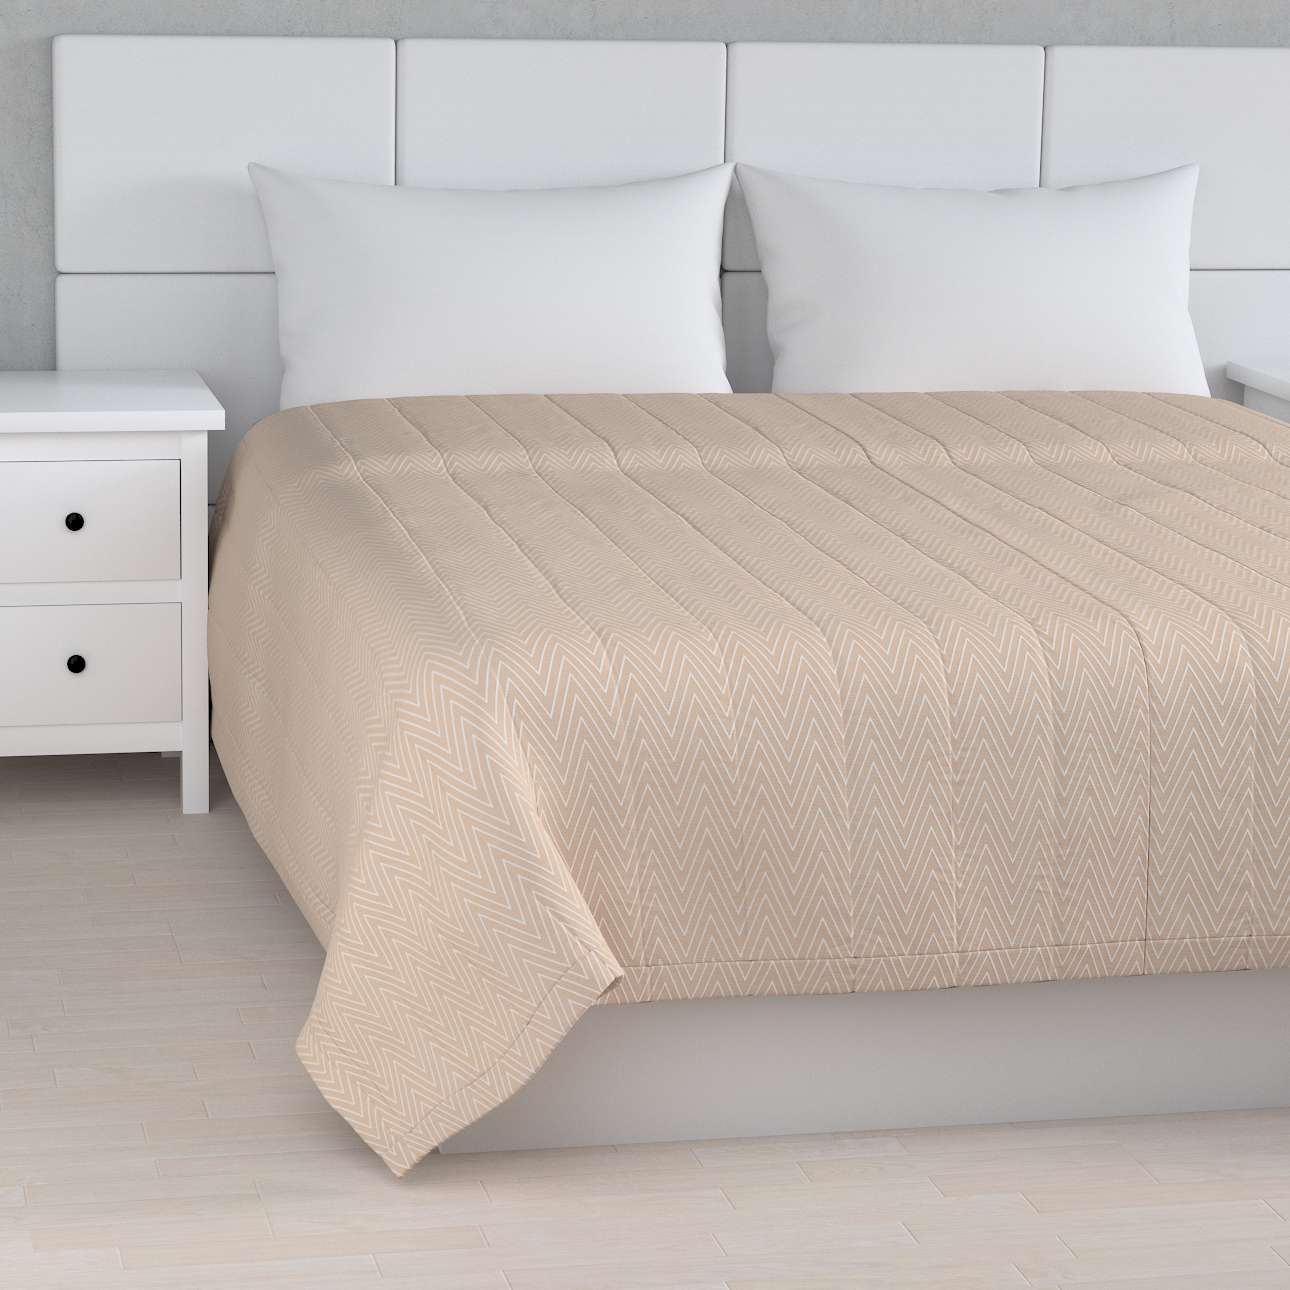 Quilted throw (vertical quilt pattern) 260 x 210 cm (102 x 83 inch) in collection Brooklyn, fabric: 137-91